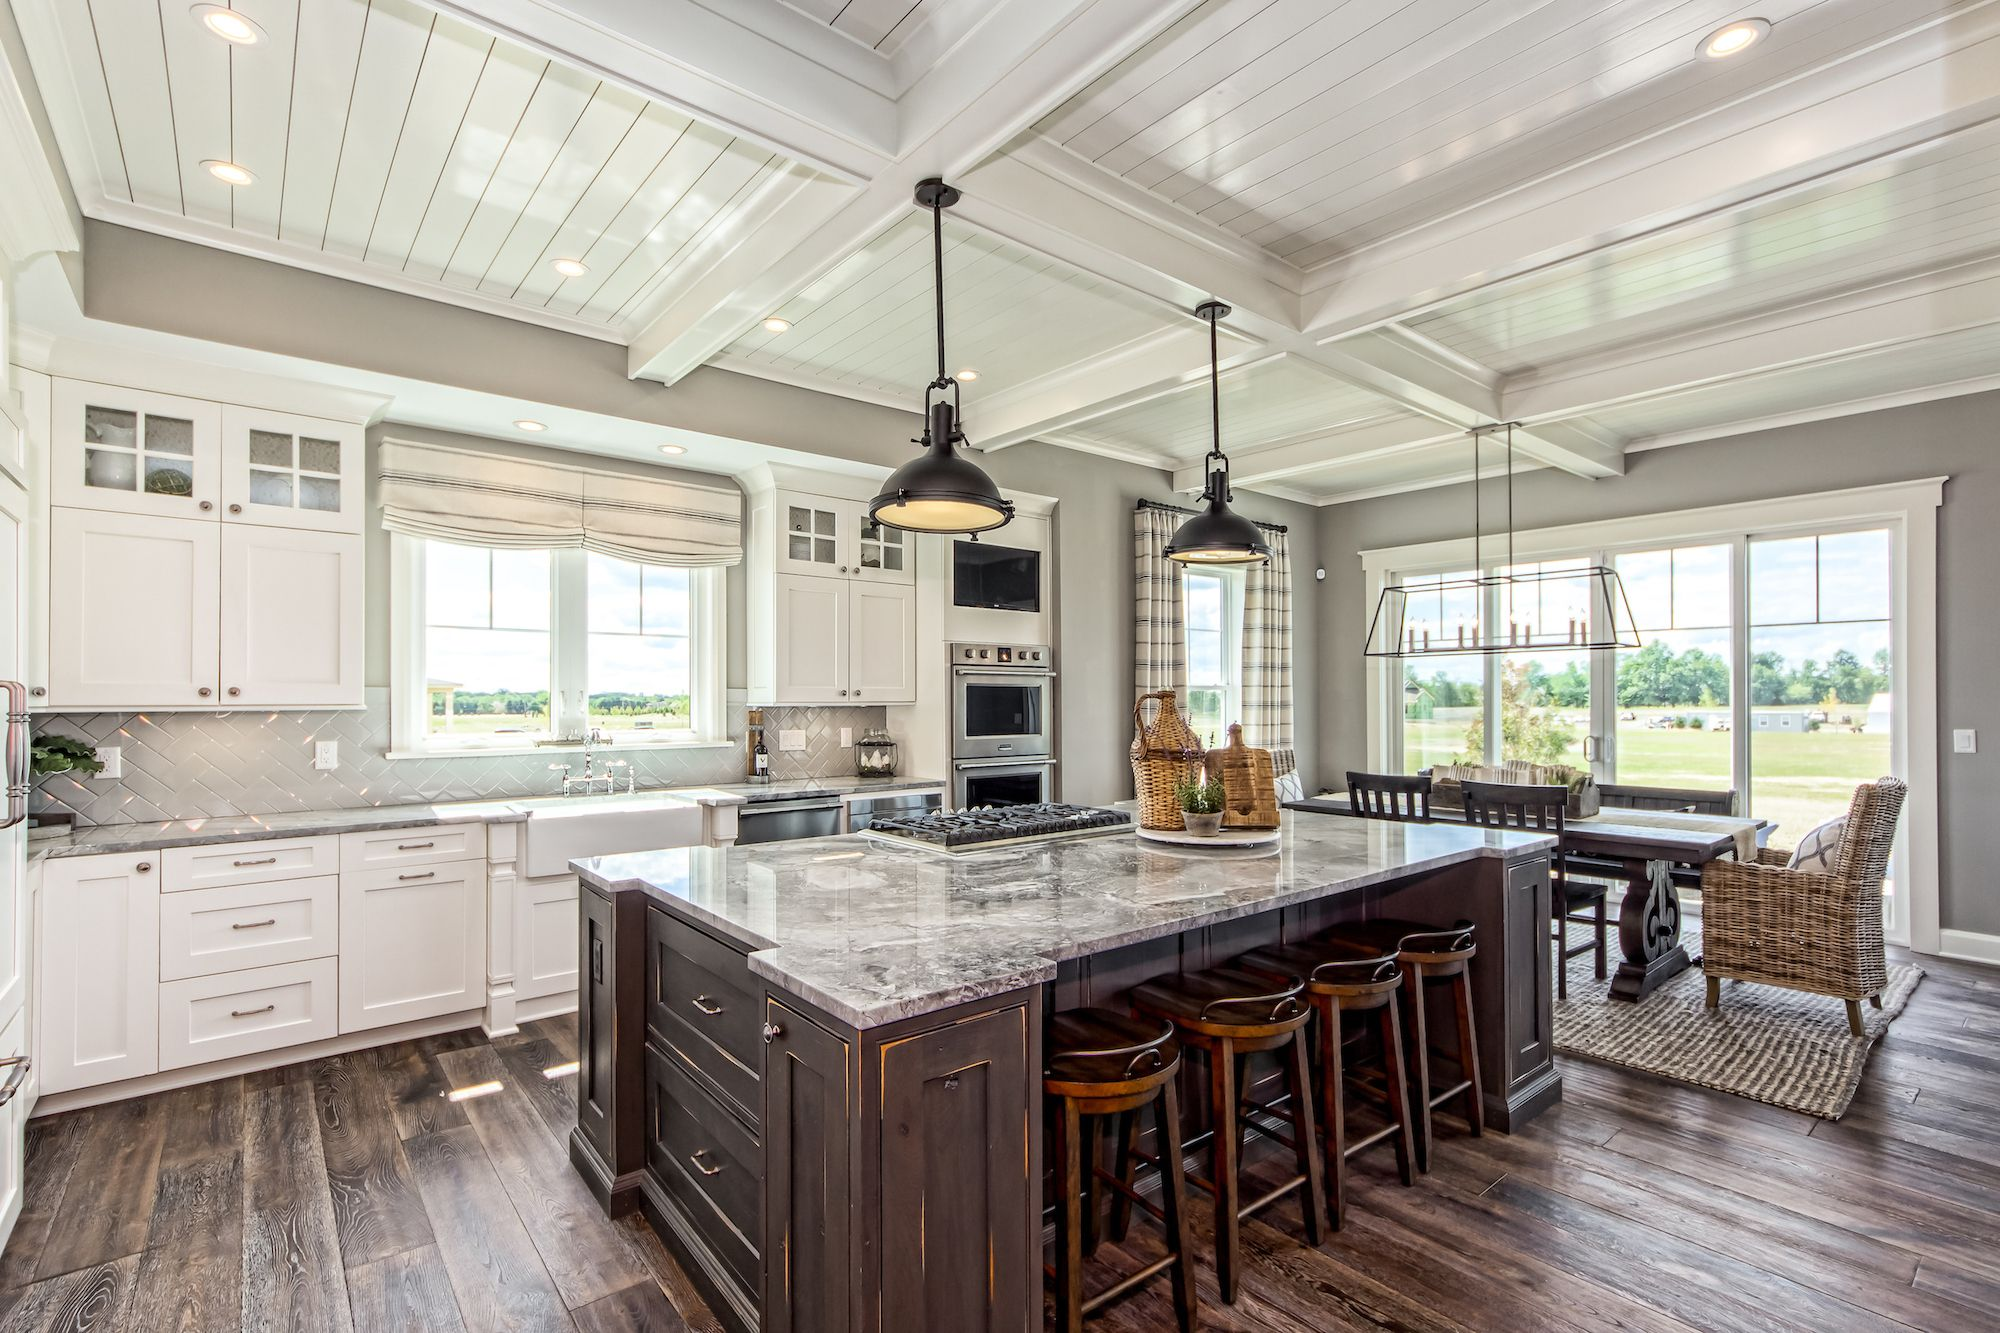 This Kitchen And Bar Design In Columbus Ohio Is Perfect For Entertaining Guests And Family Gorgeo Modern Kitchen Design Custom Kitchen Cabinets Kitchen Design